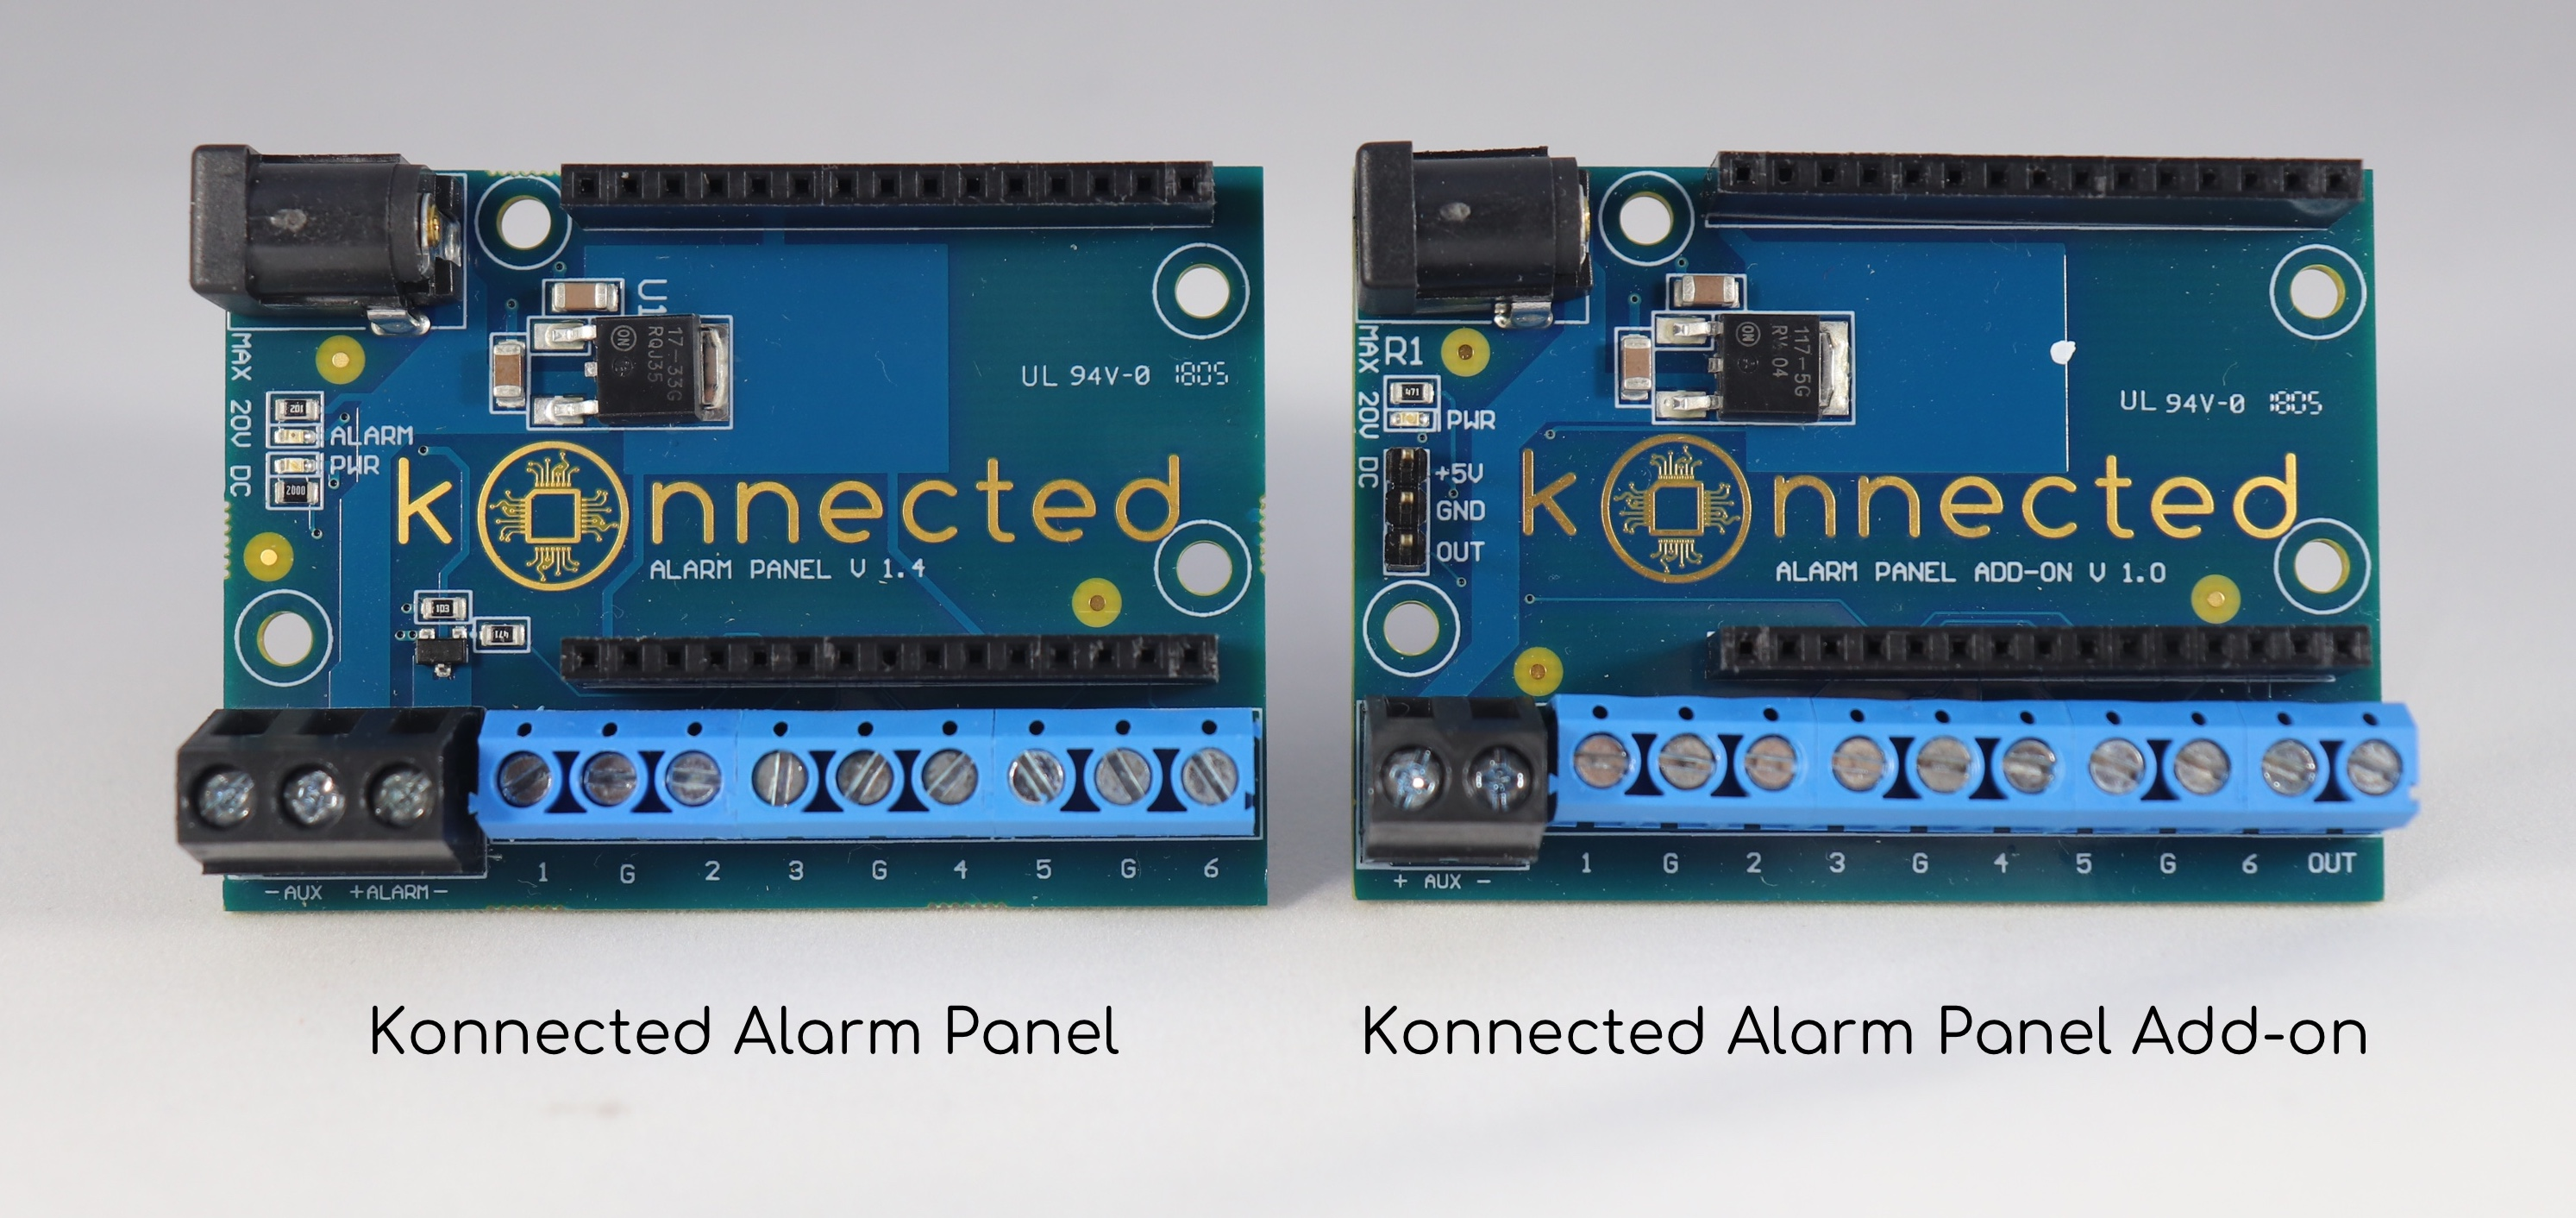 Konnected Alarm Panel - connect a wired alarm system to HA